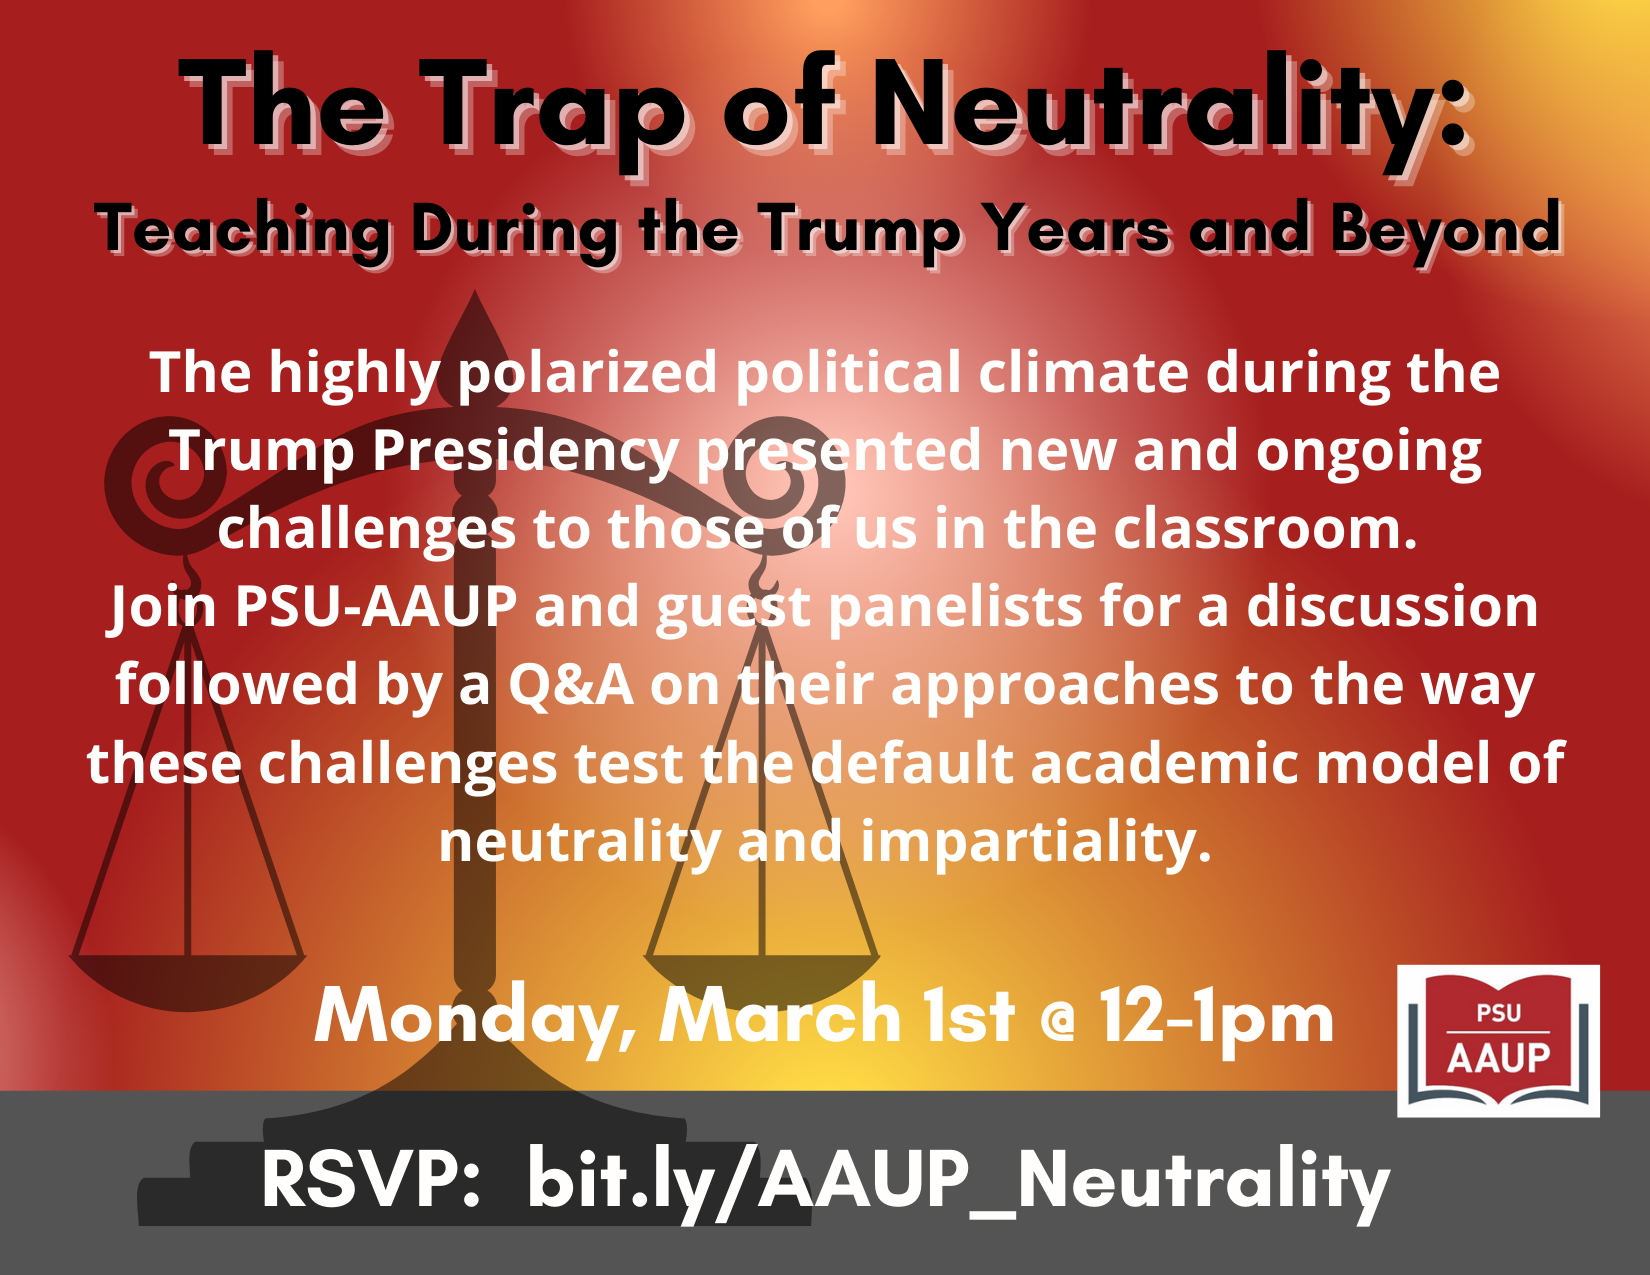 Event: The Trap of Neutrality - March 1st